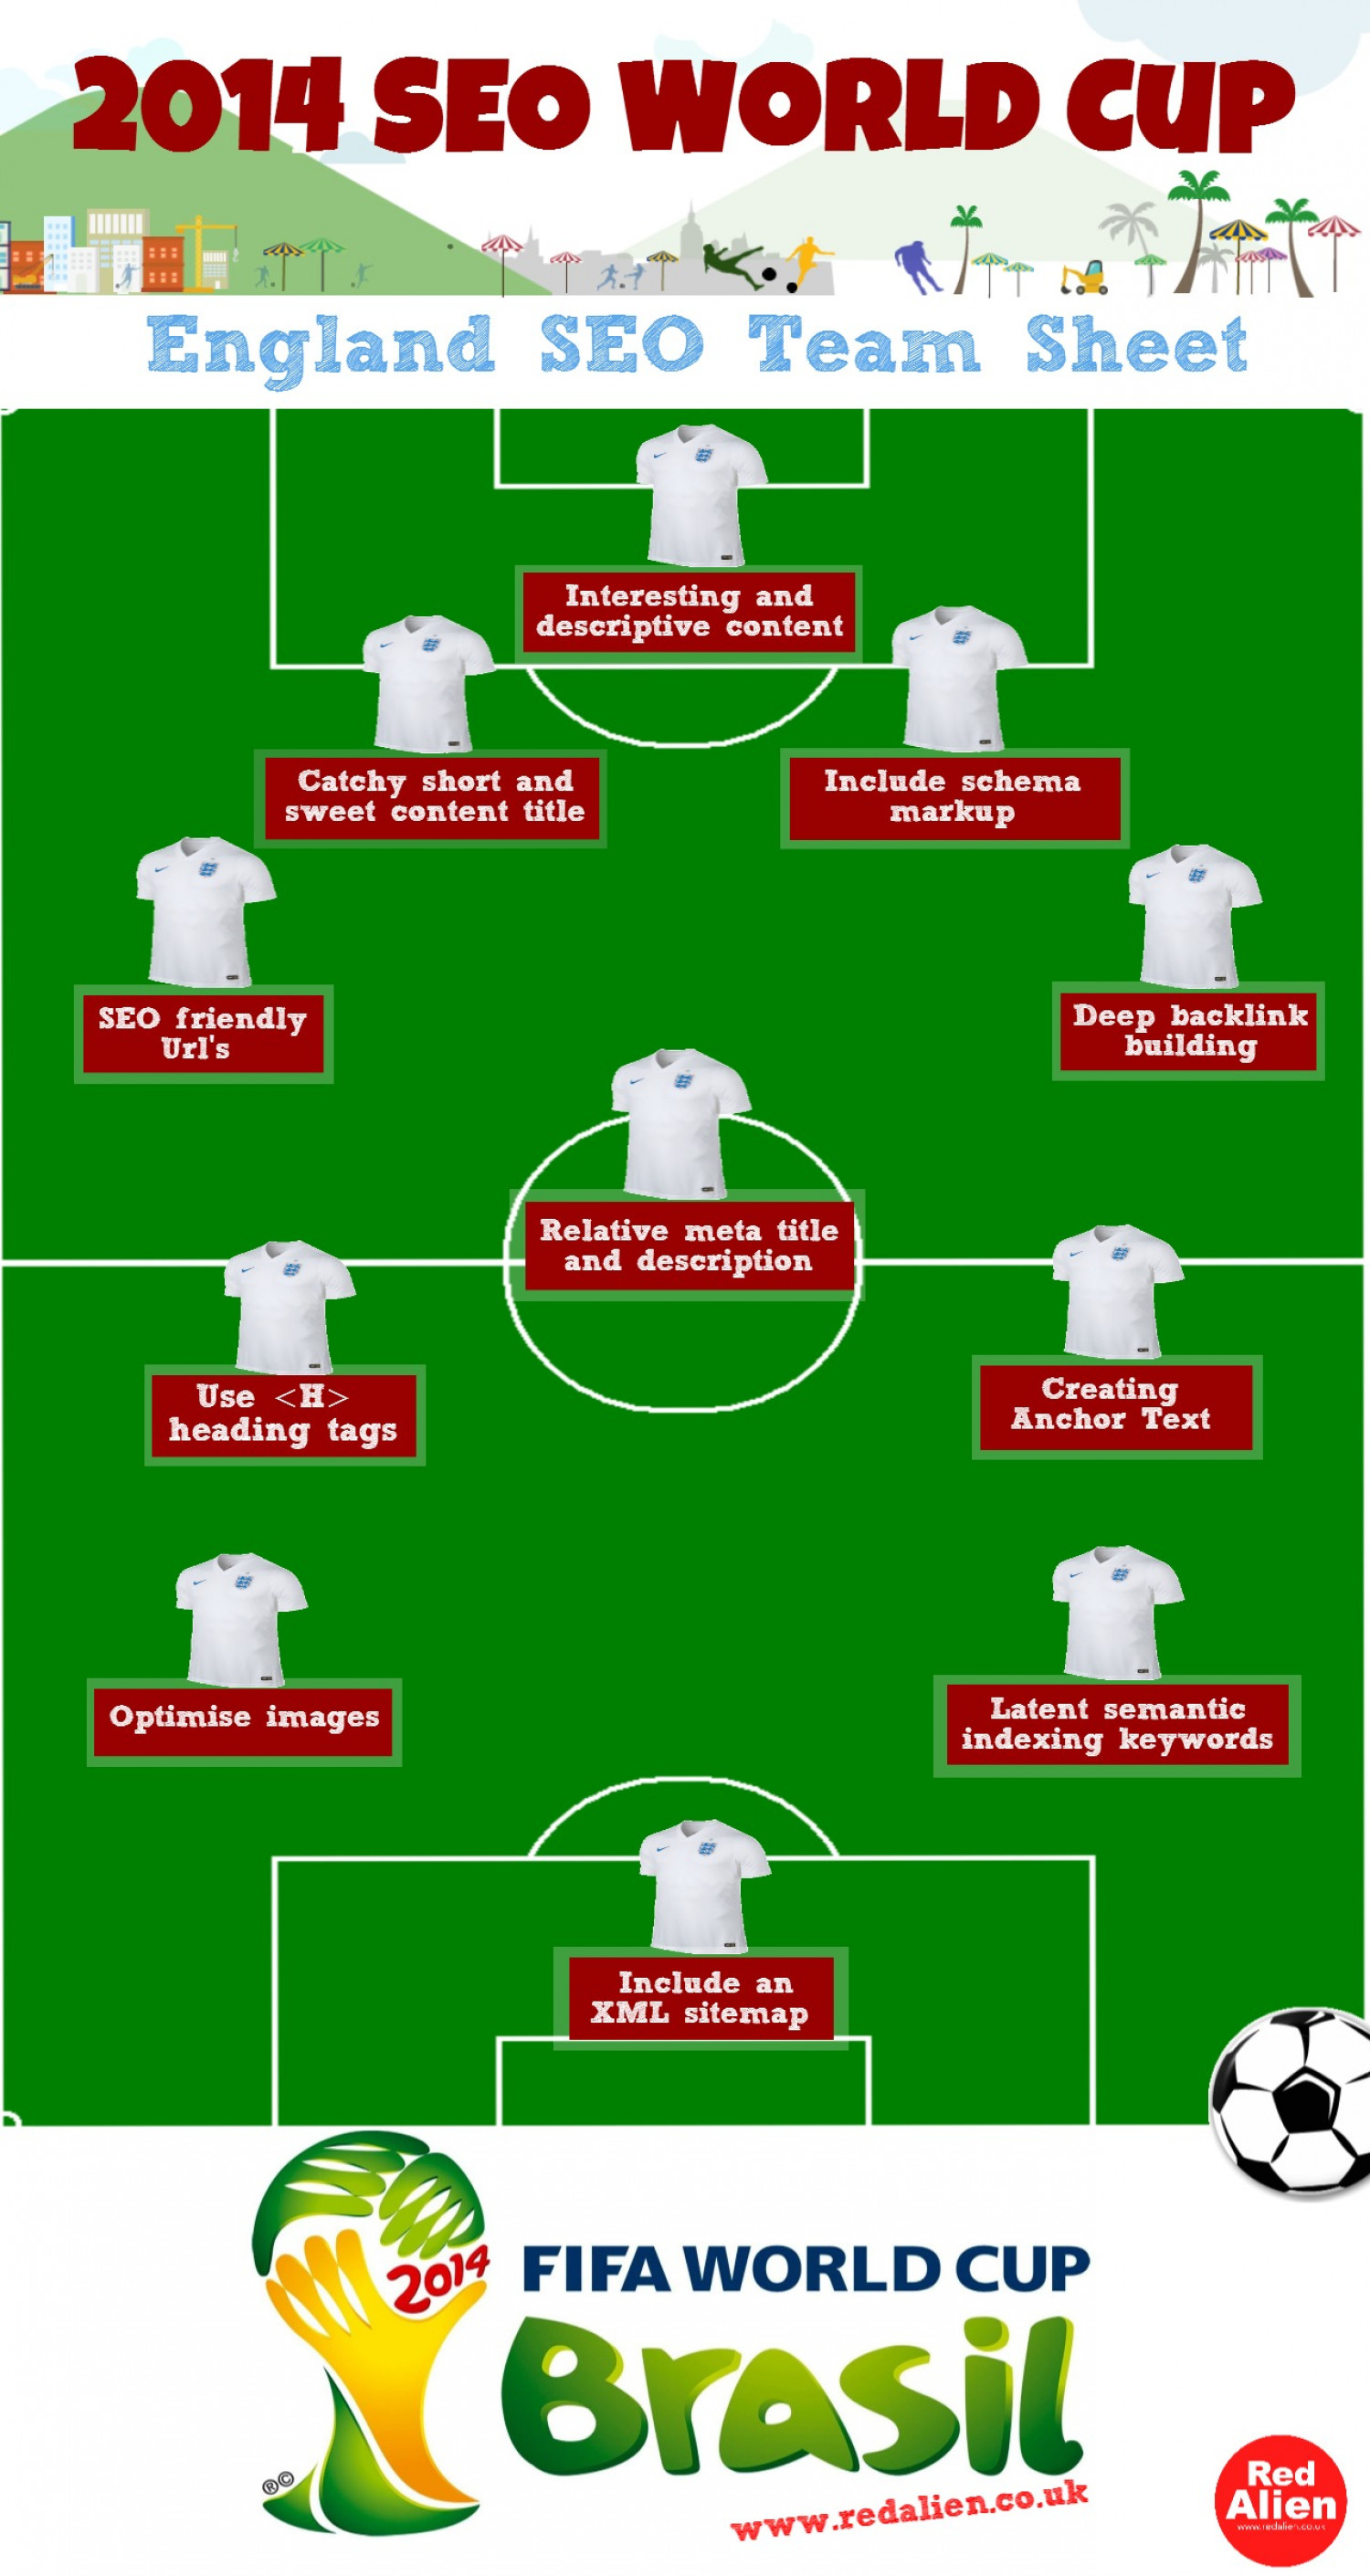 The World Cup SEO Team Sheet Infographic